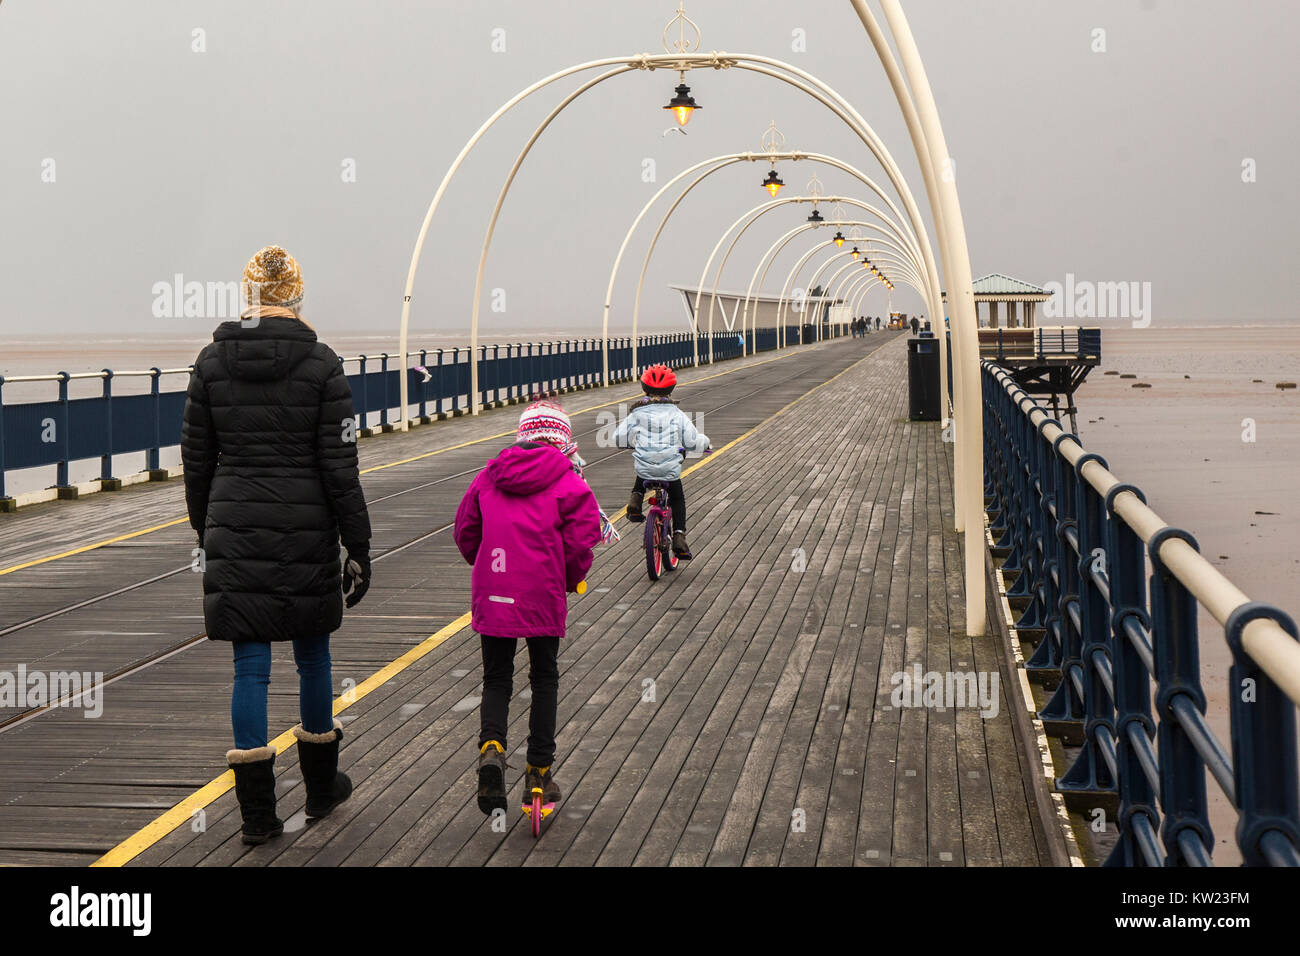 Southport, Merseyside, UK 30th December 2017. UK Weather. Wet, Showery day as Storm Dylan approaches with winds - Stock Image